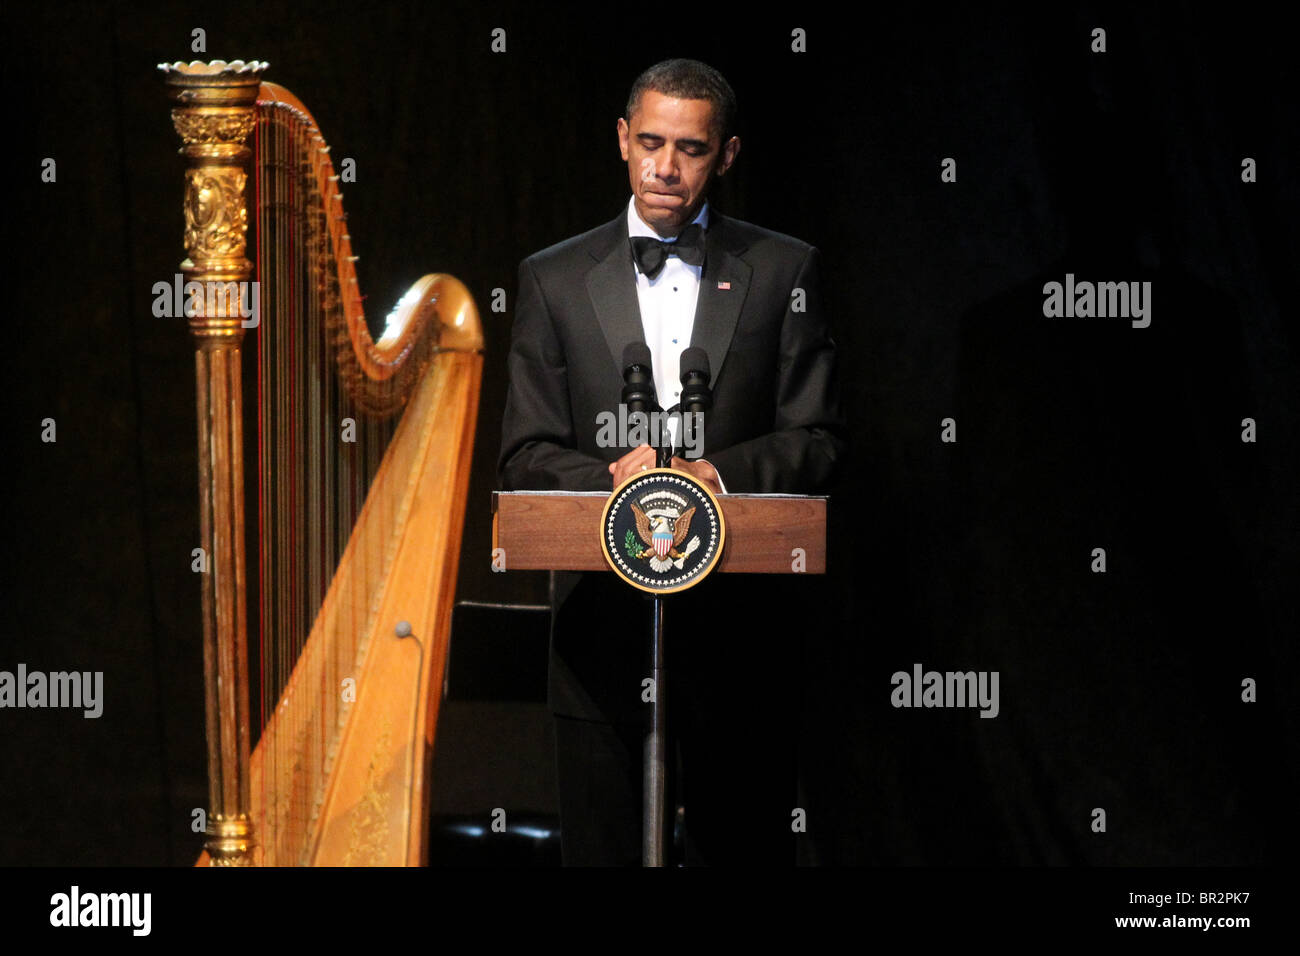 President Barack Obama speaks during the Mexico State Dinner at the White House. - Stock Image